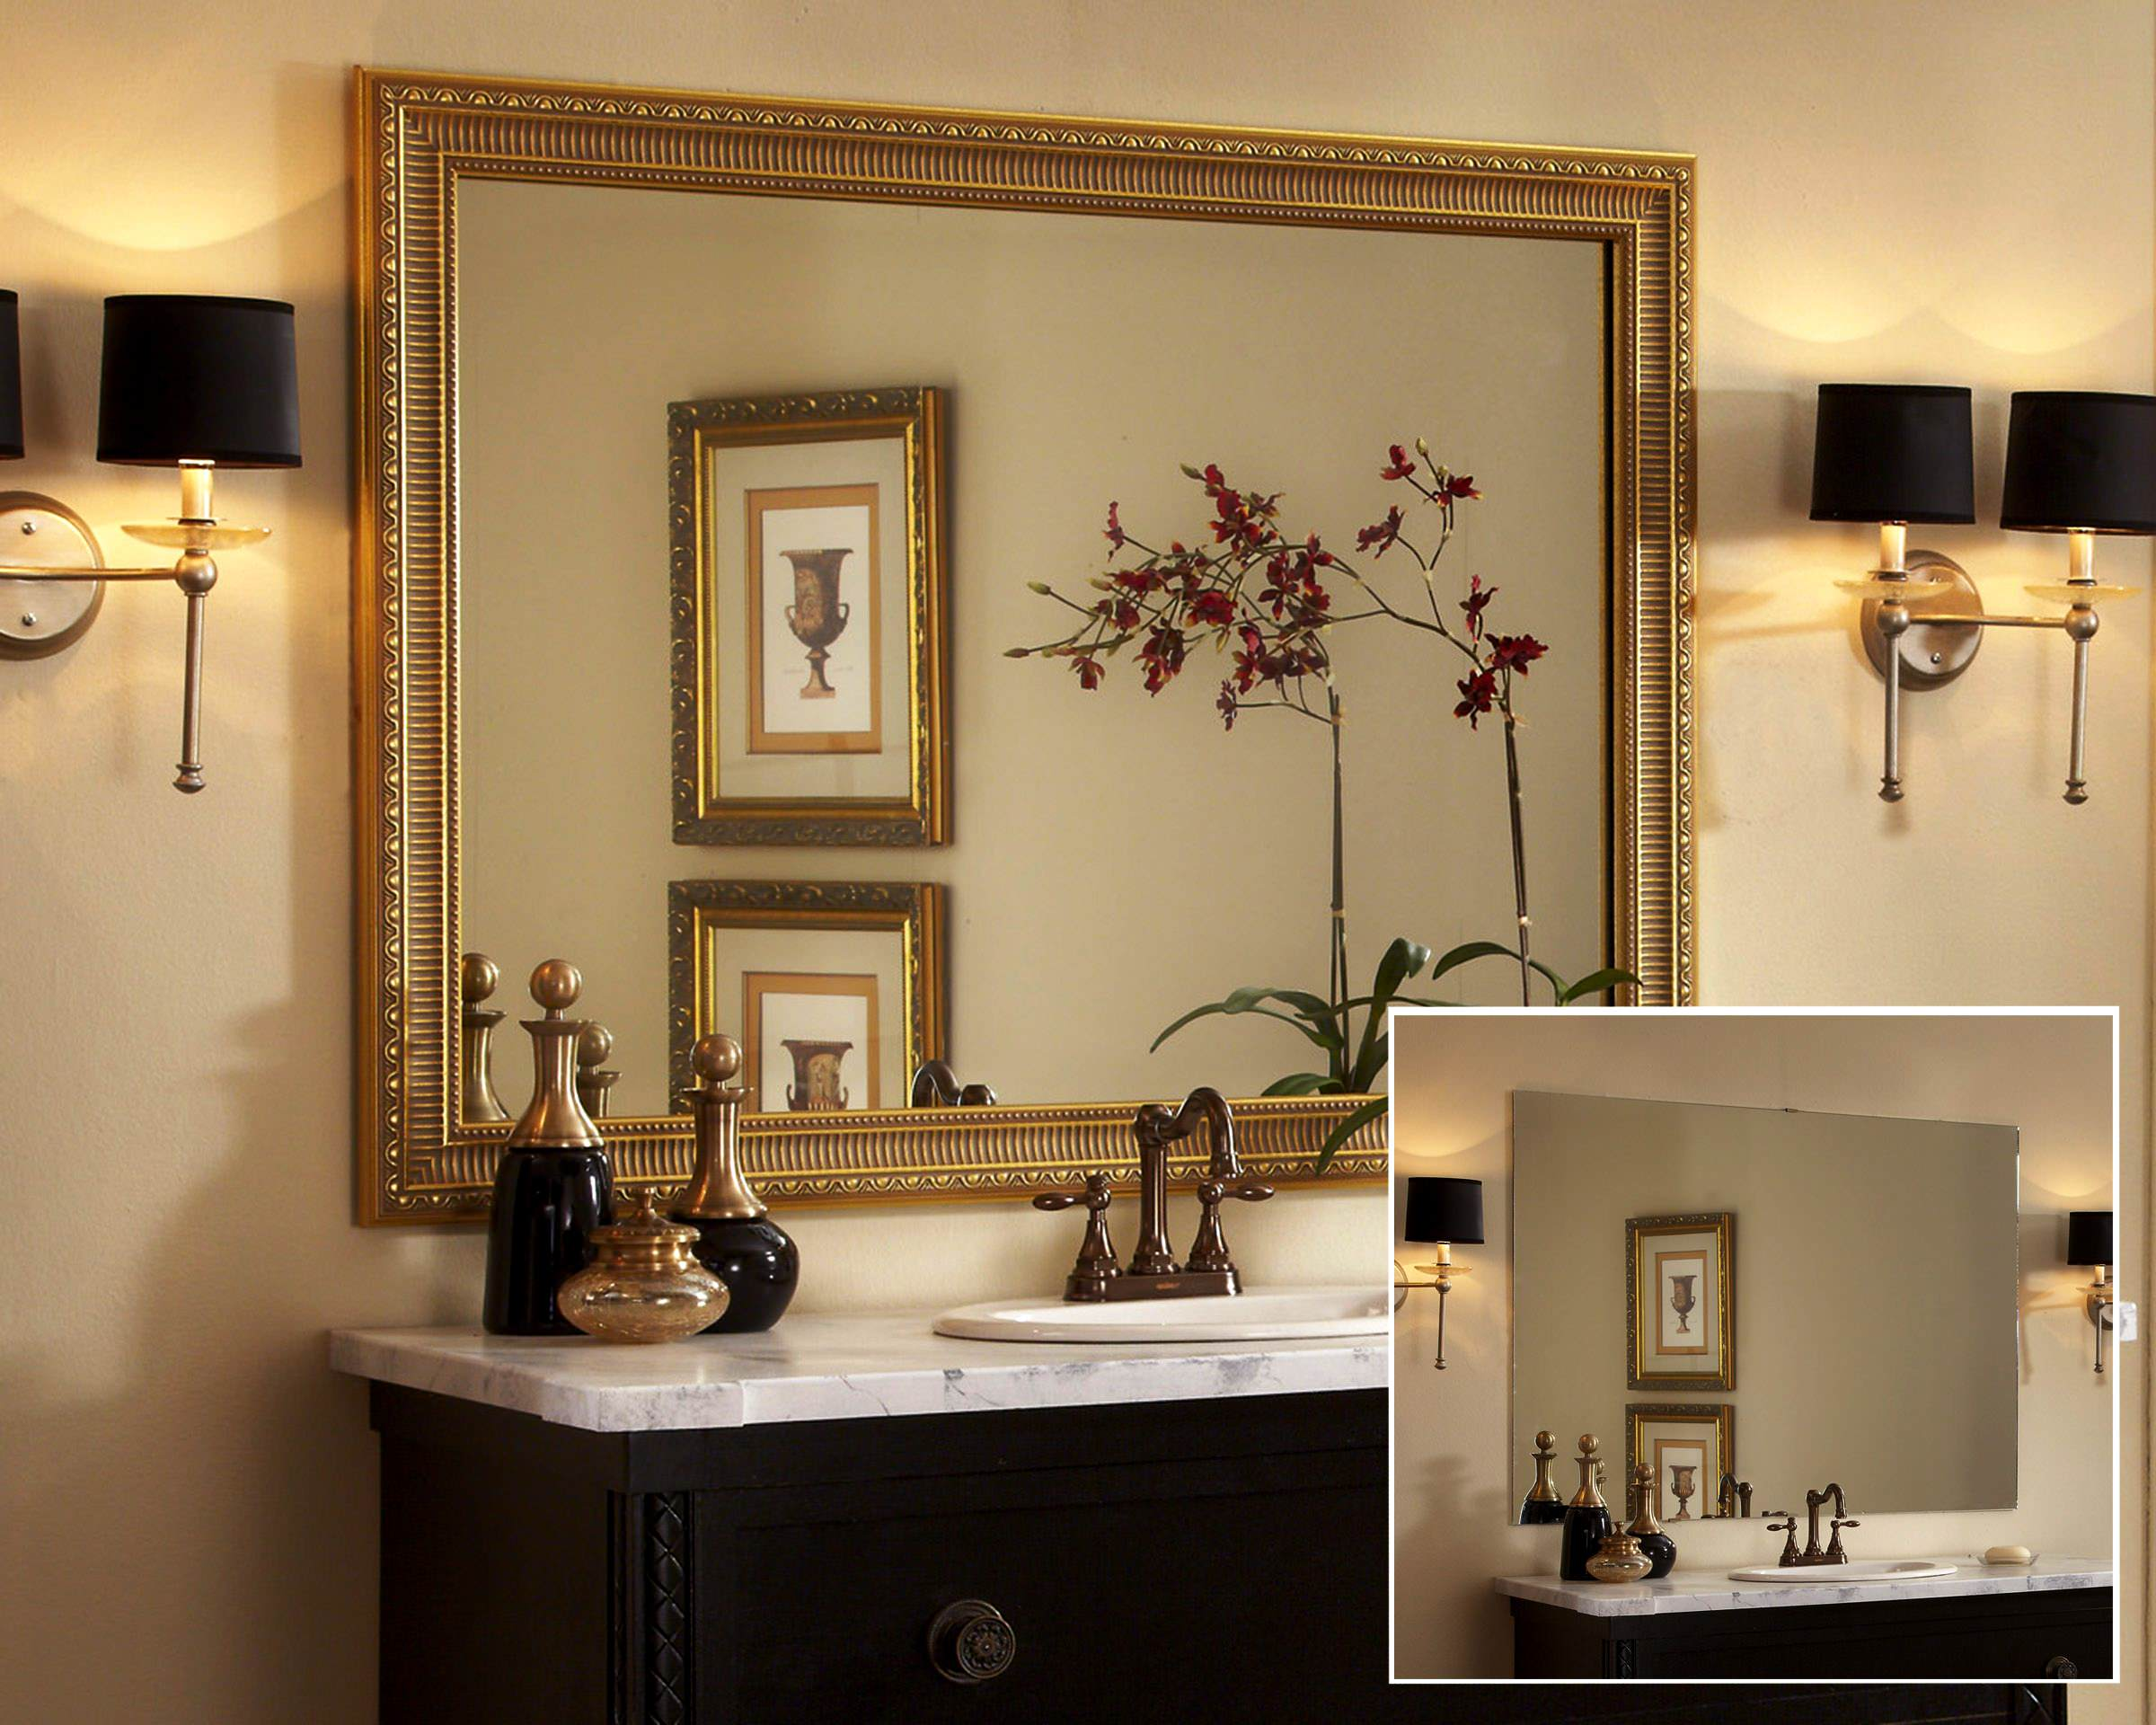 Custom Framed Mirror Houzz